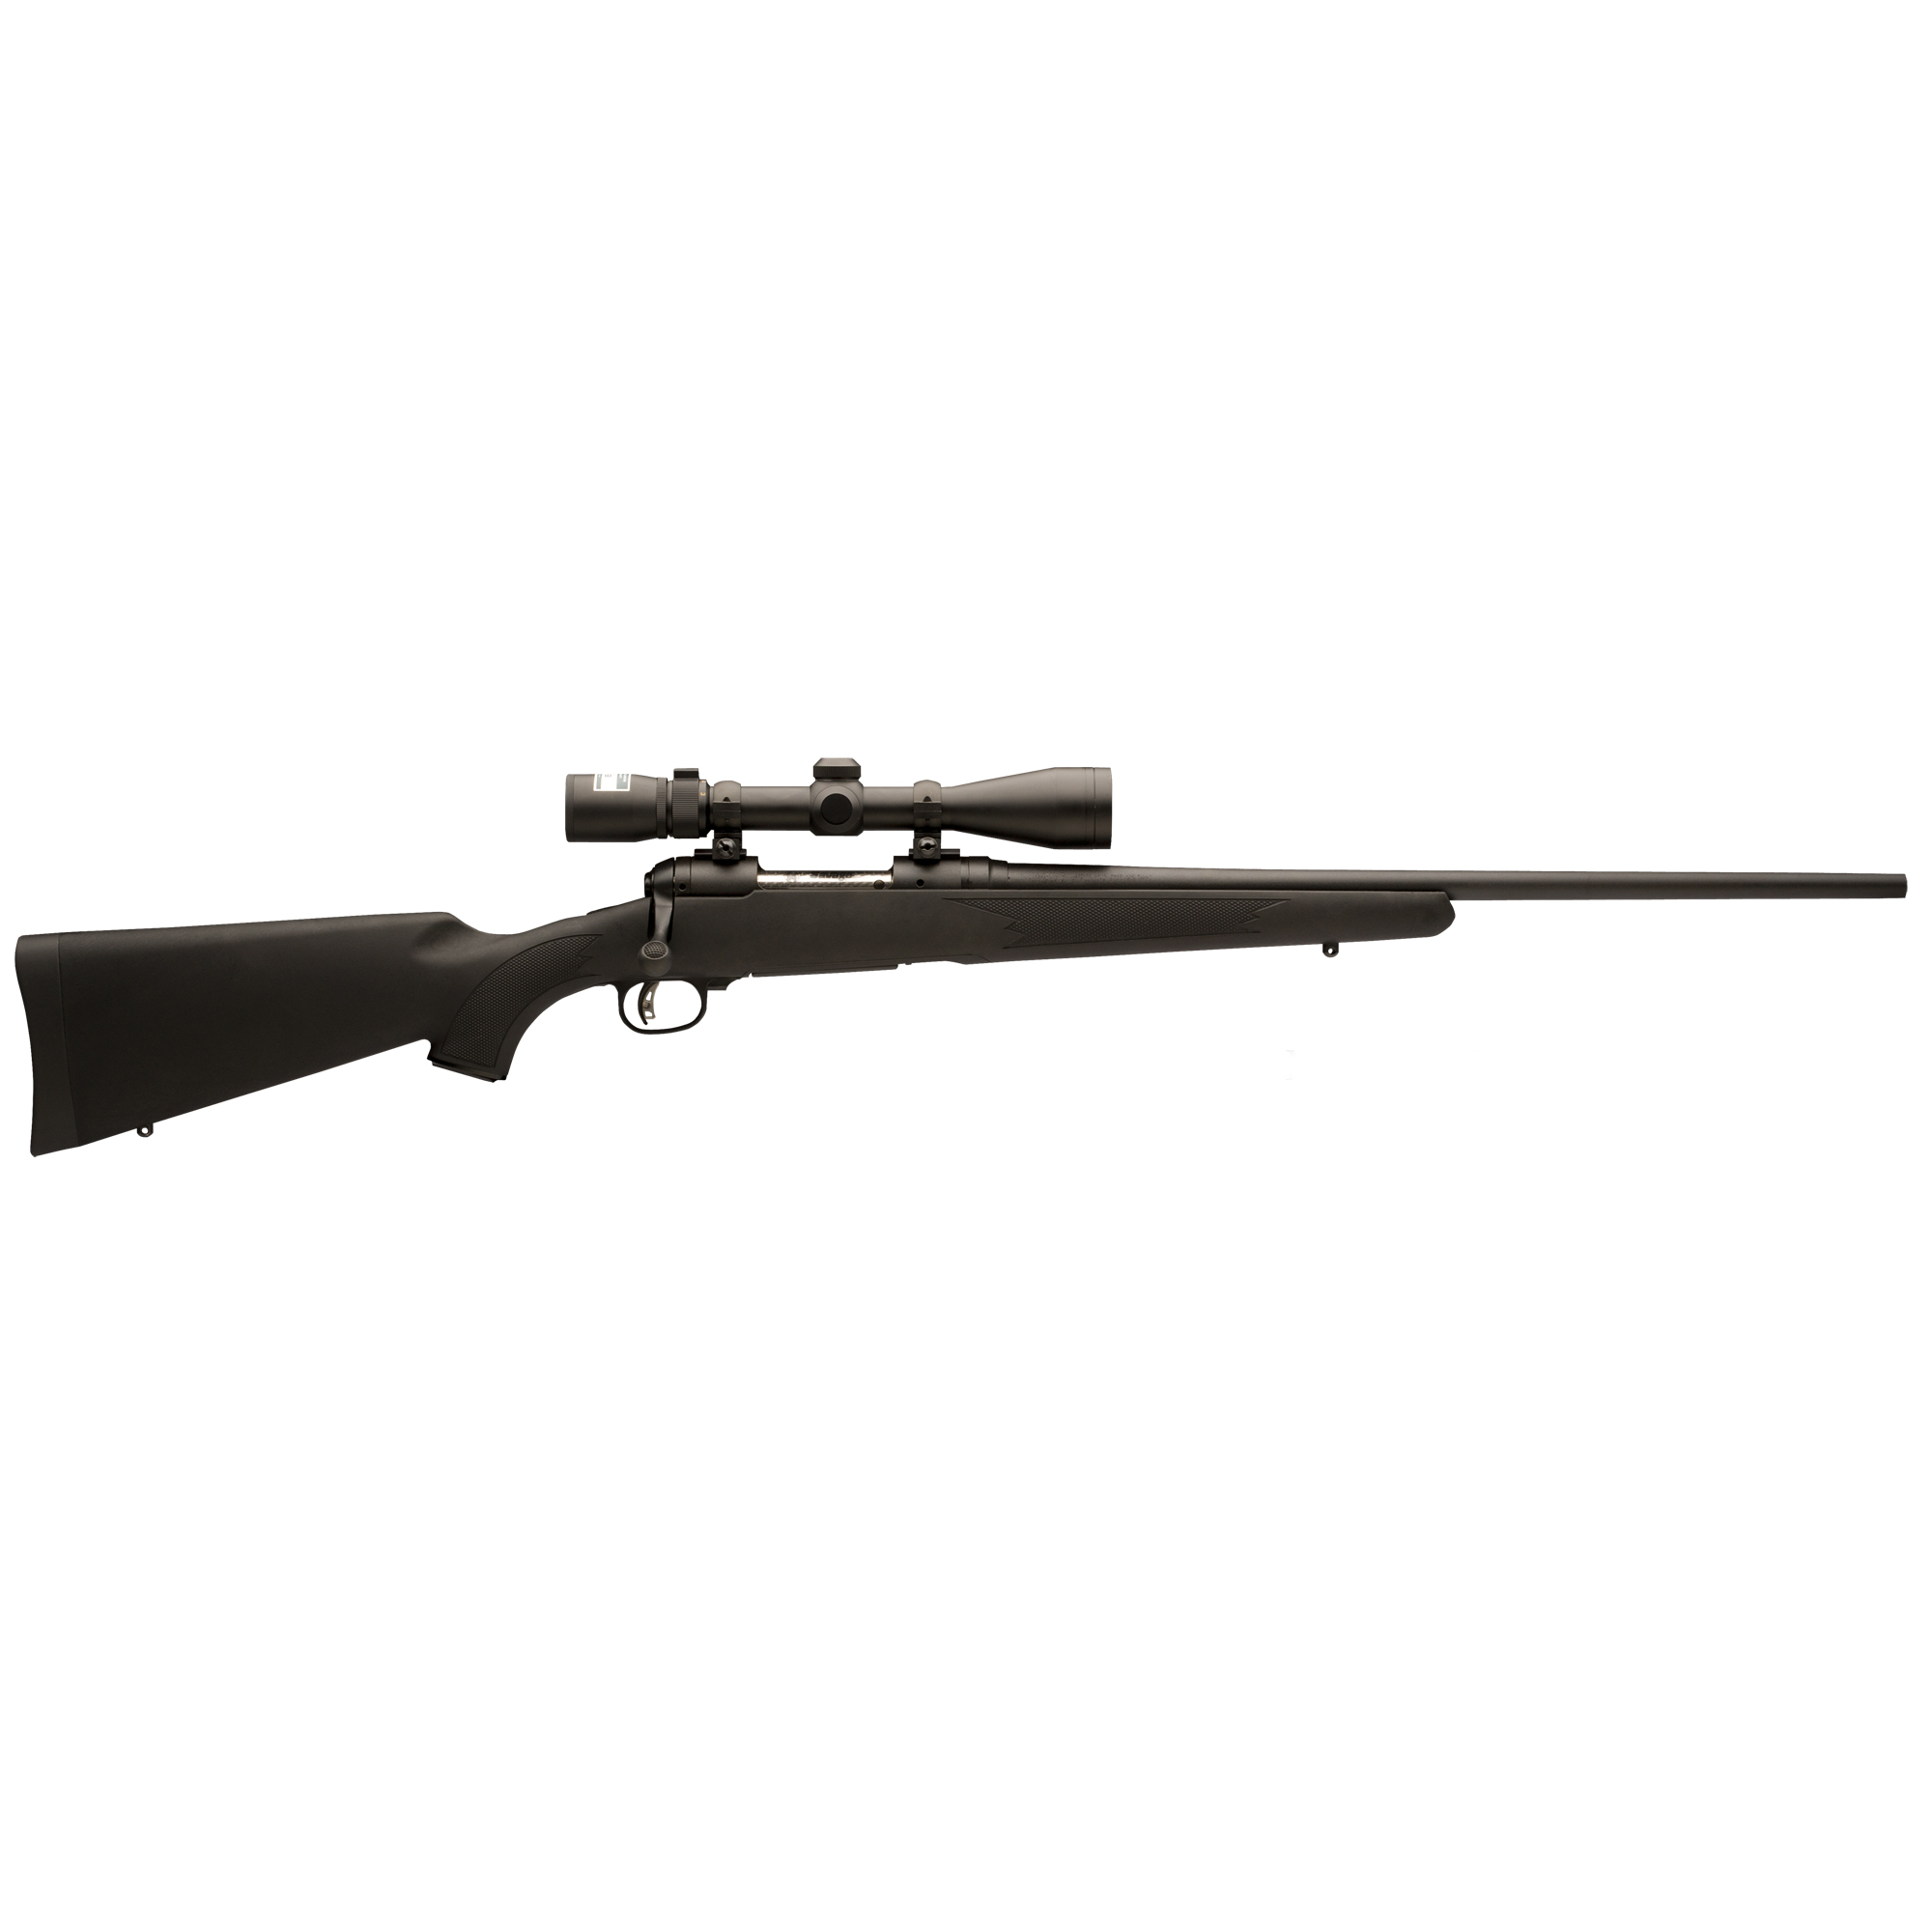 Savage Model 111 Trophy Hunter XP Centerfire Rifle Package, .338 Win. Mag, Black